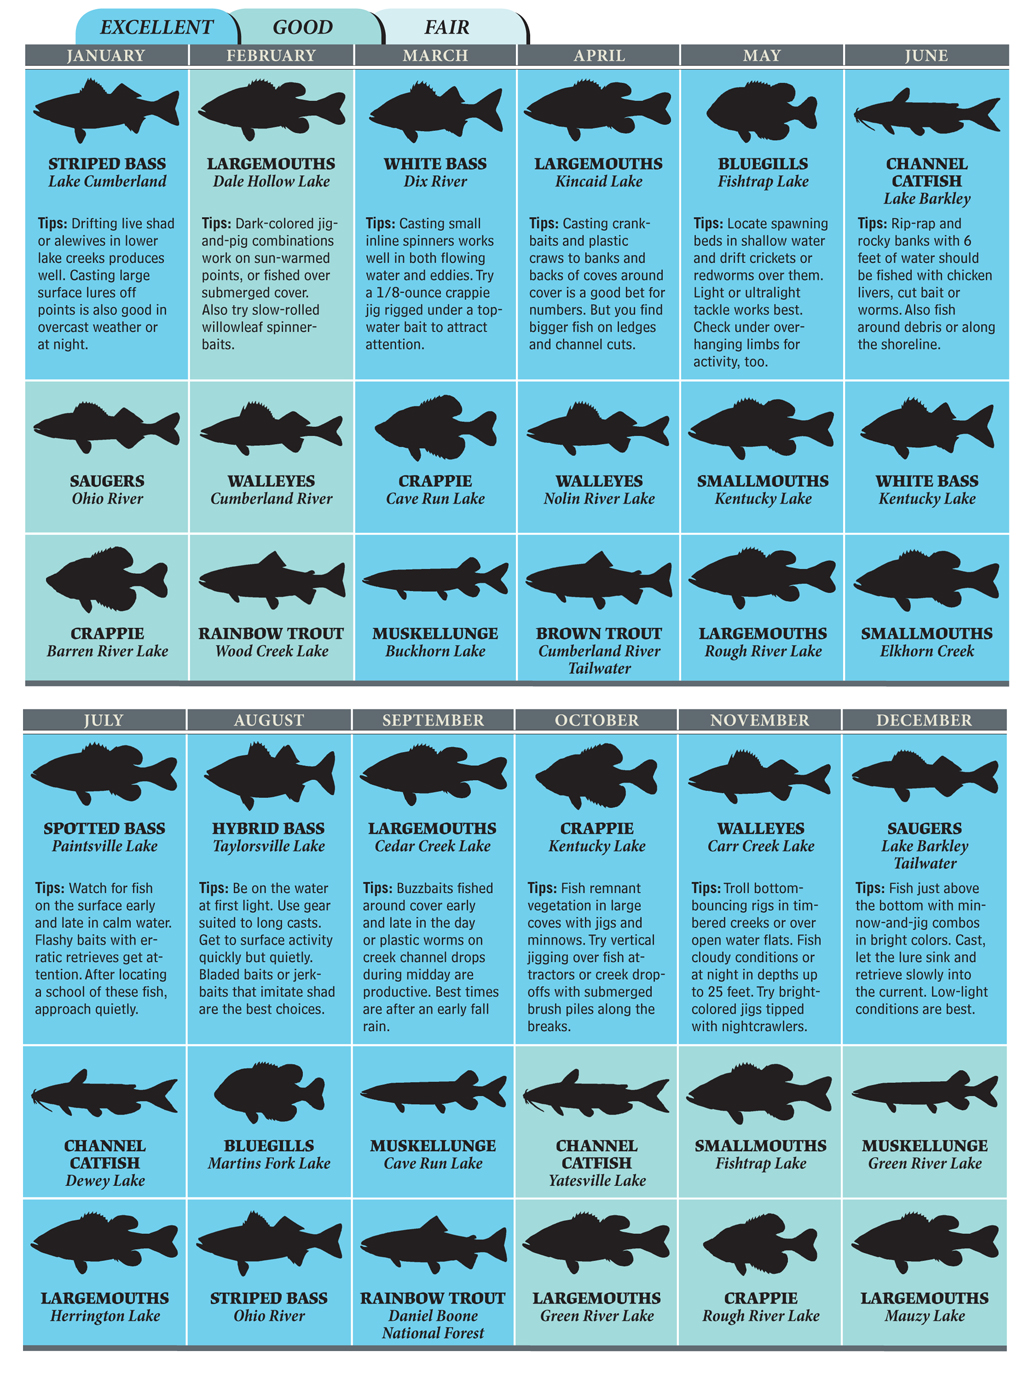 Hot spots for kentucky fishing in 2012 game fish for Kentucky fish and game